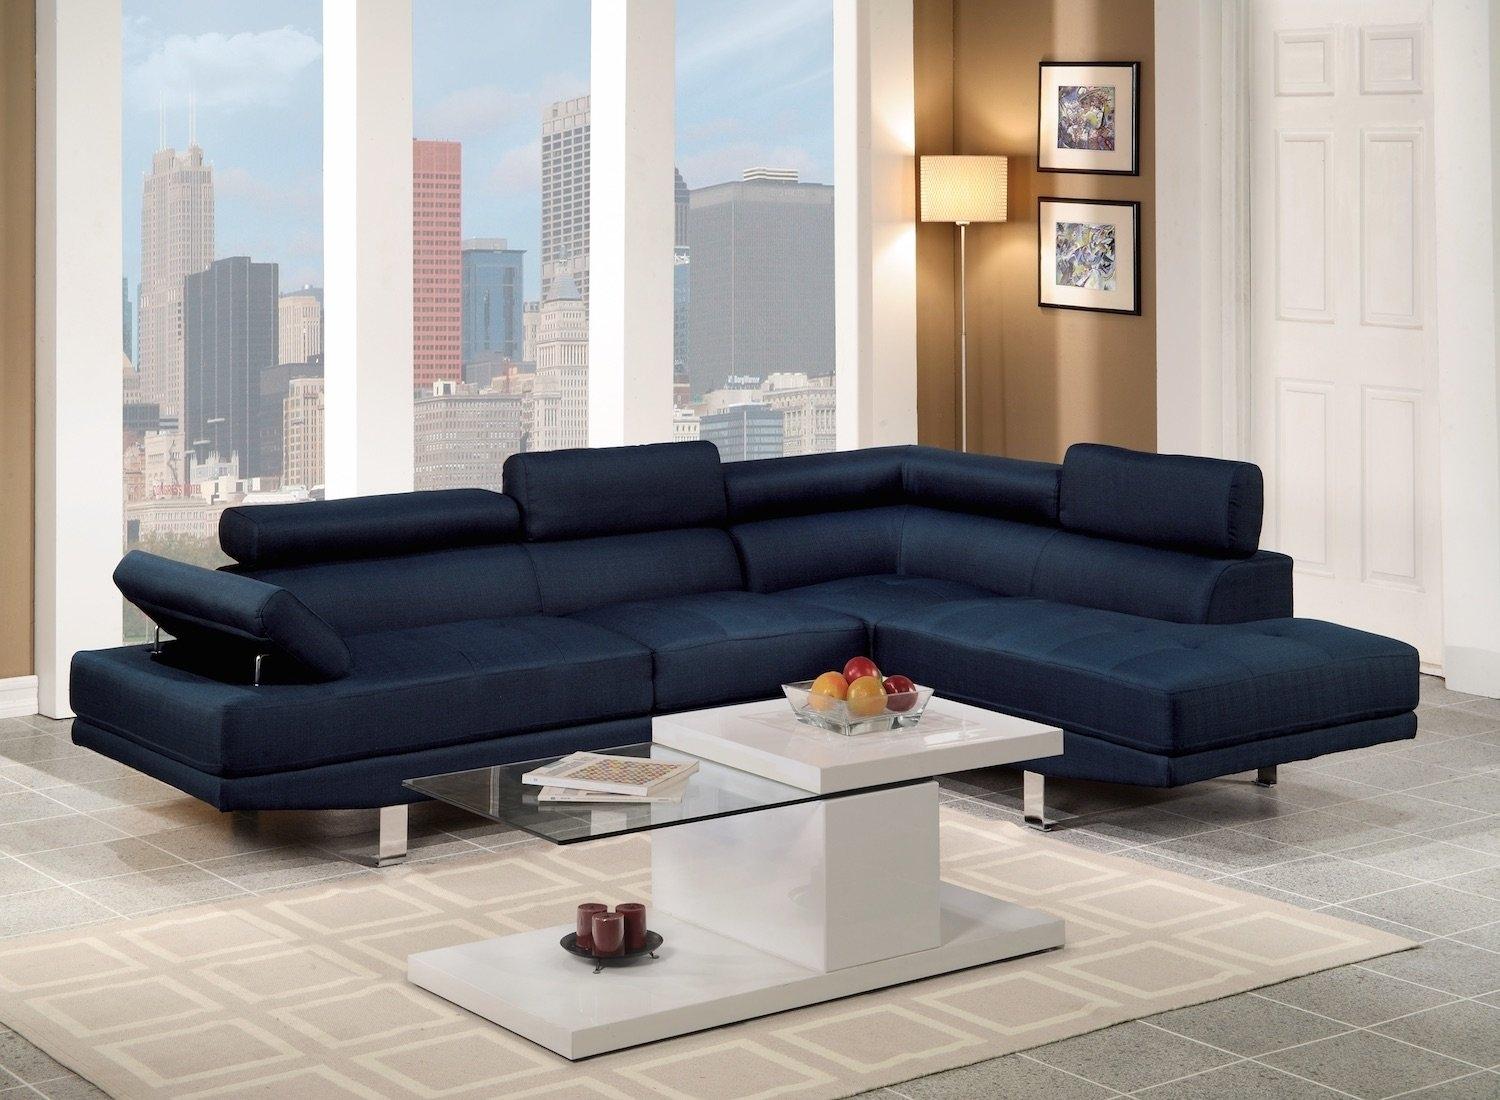 Navy Blue Sectional Sofa | Wayfair in Adjustable Sectional Sofas With Queen Bed